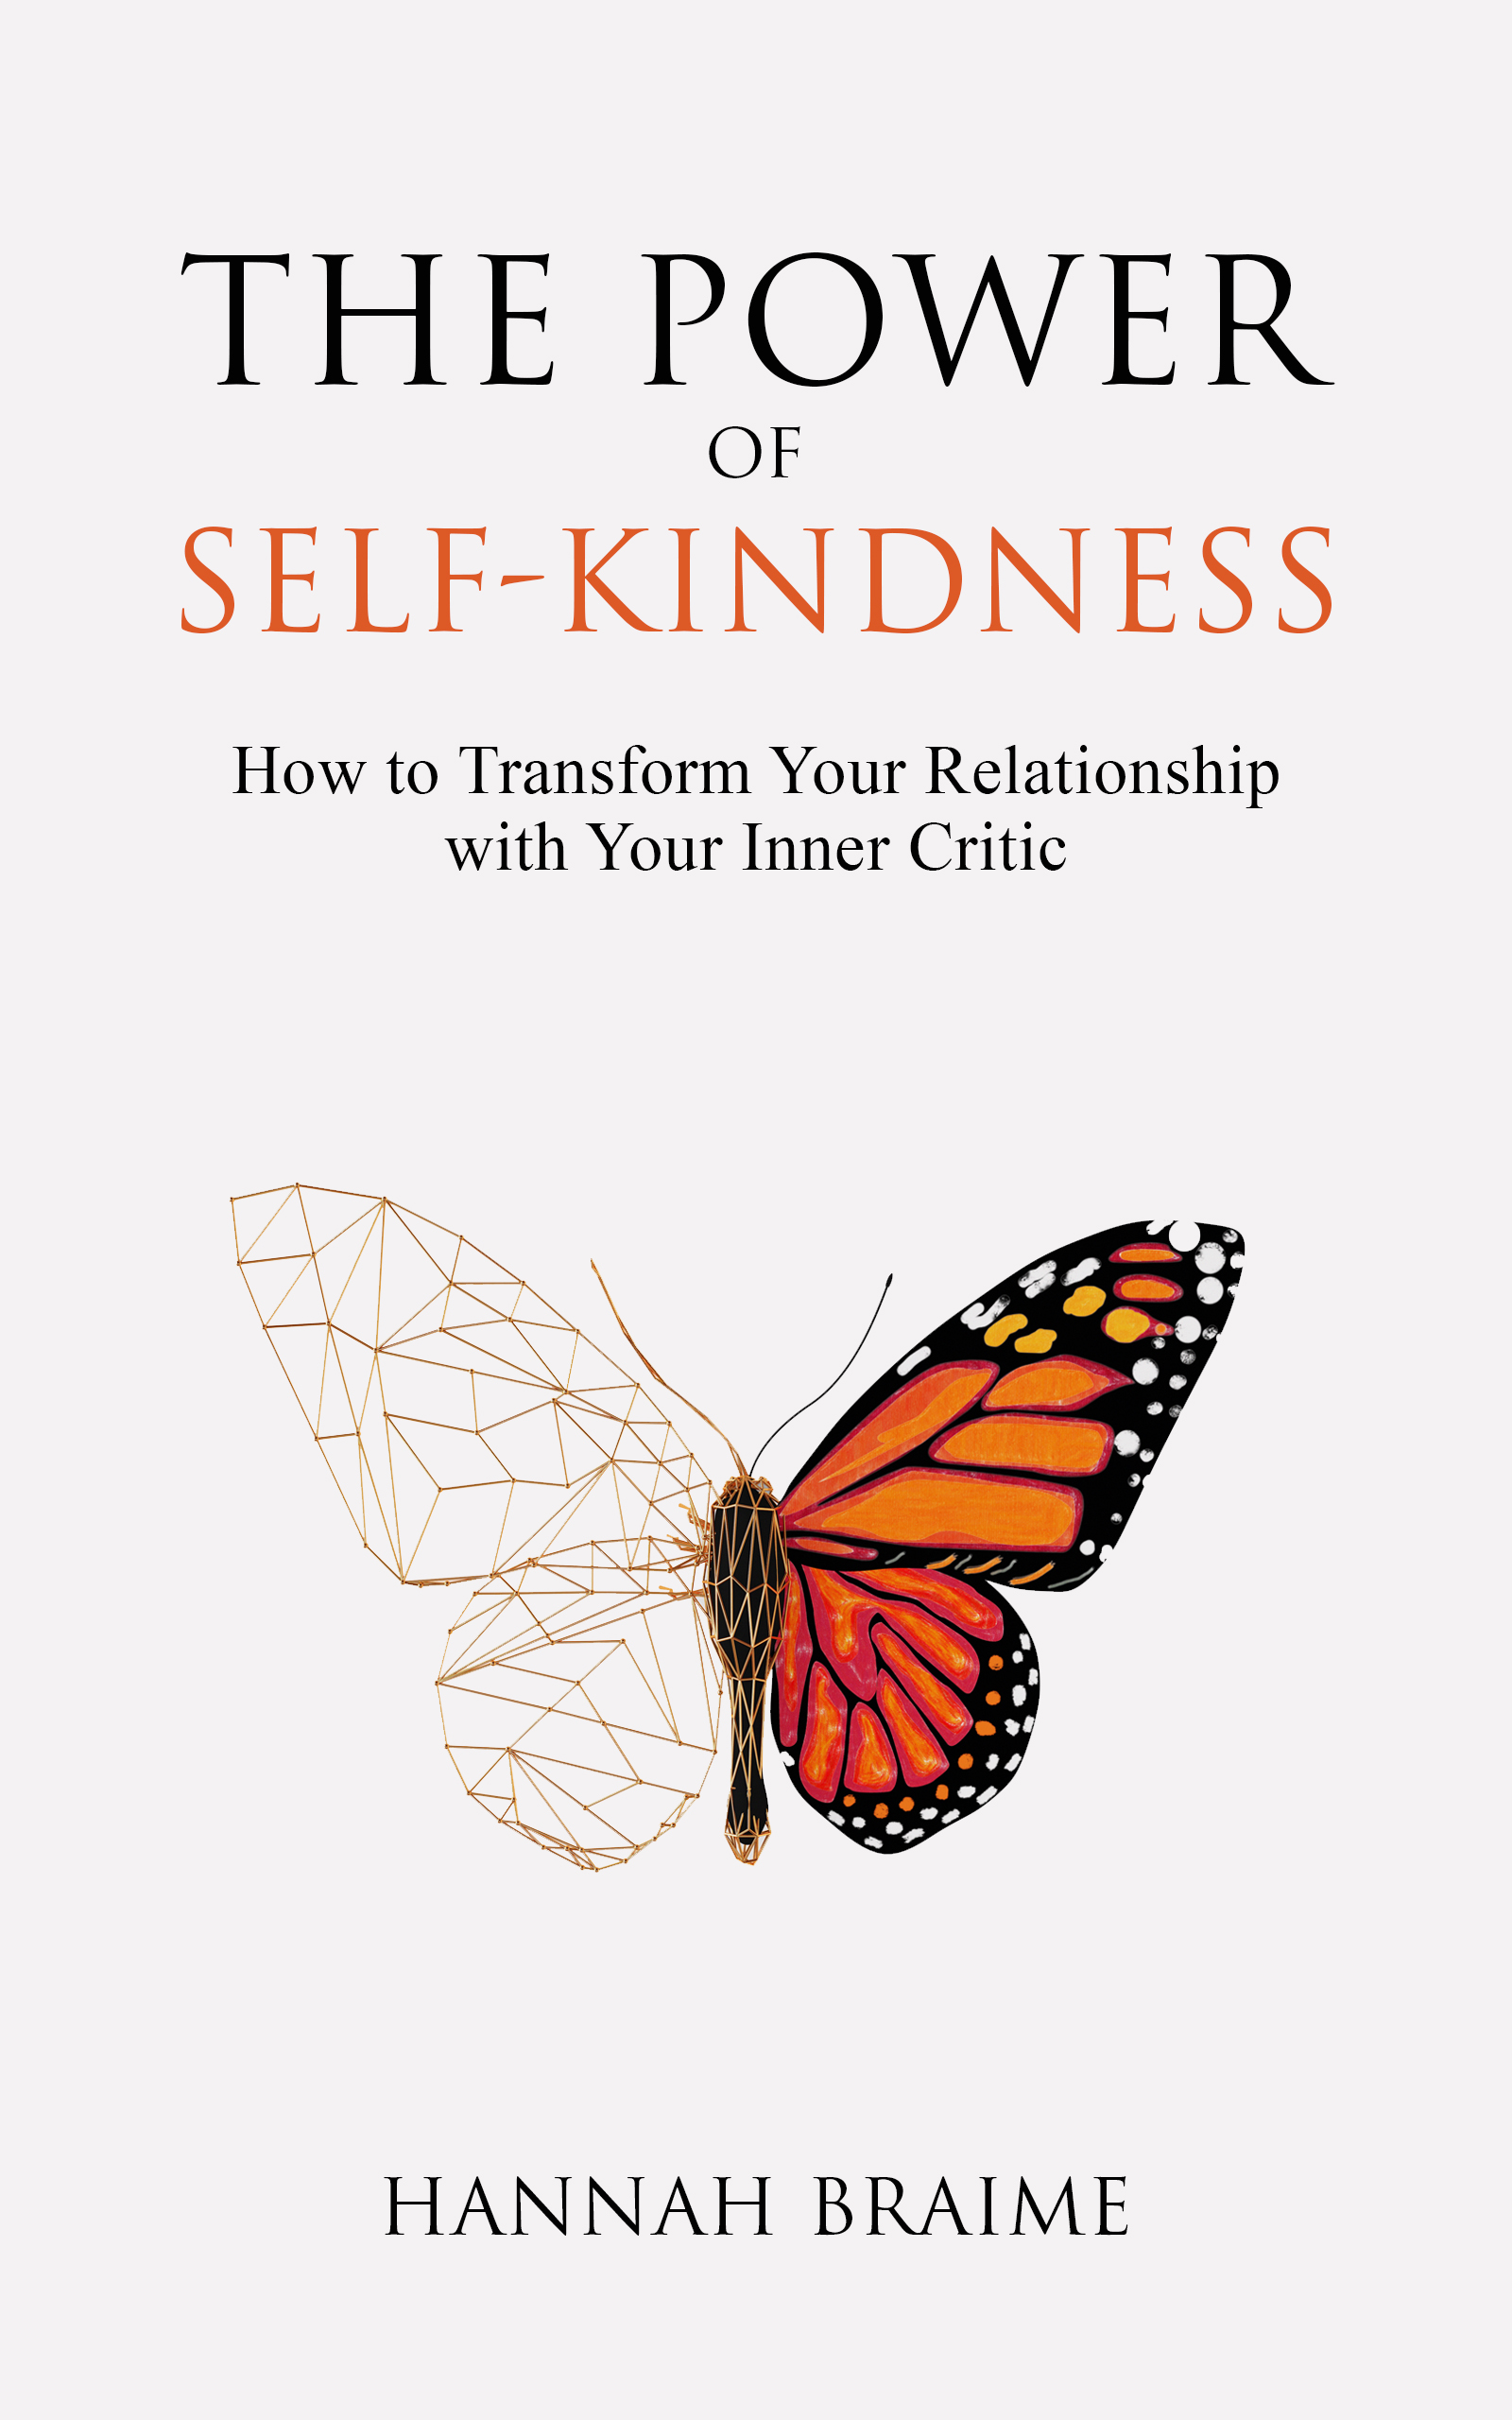 The Power of Self-Kindness ebook cover POSK.jpg